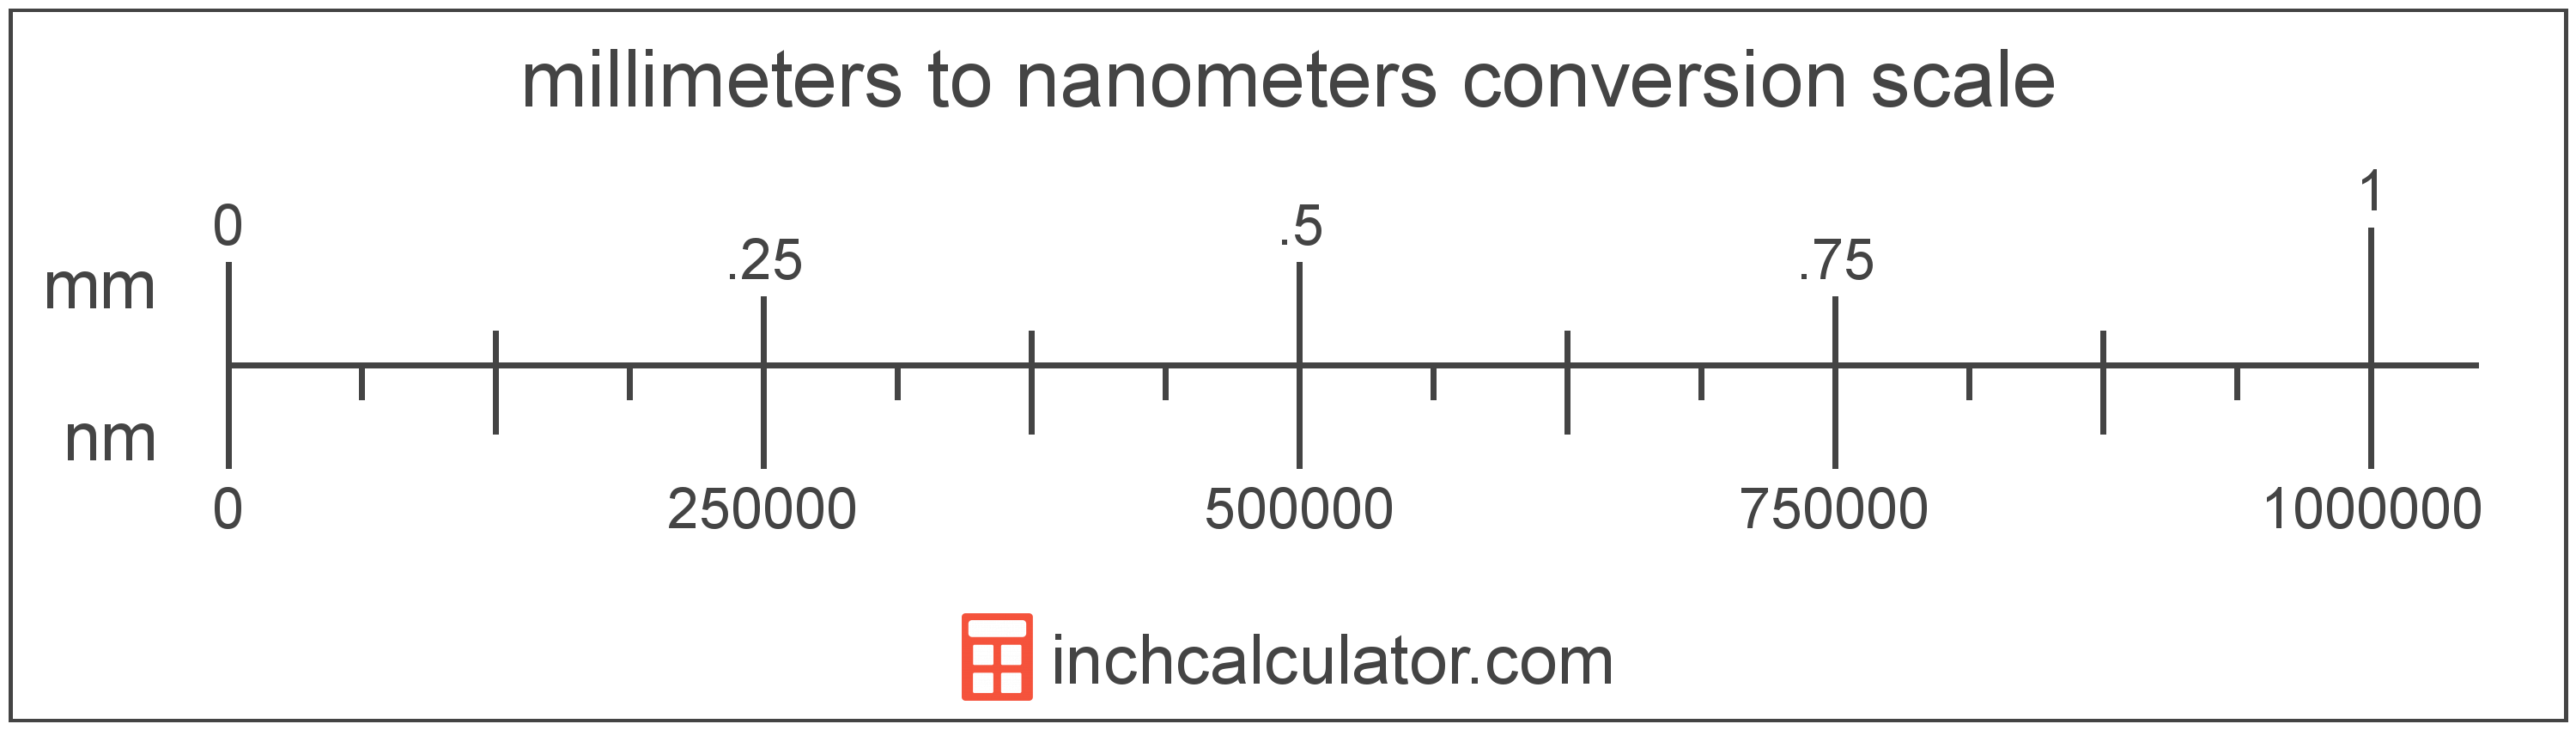 conversion scale showing nanometers and equivalent millimeters length values